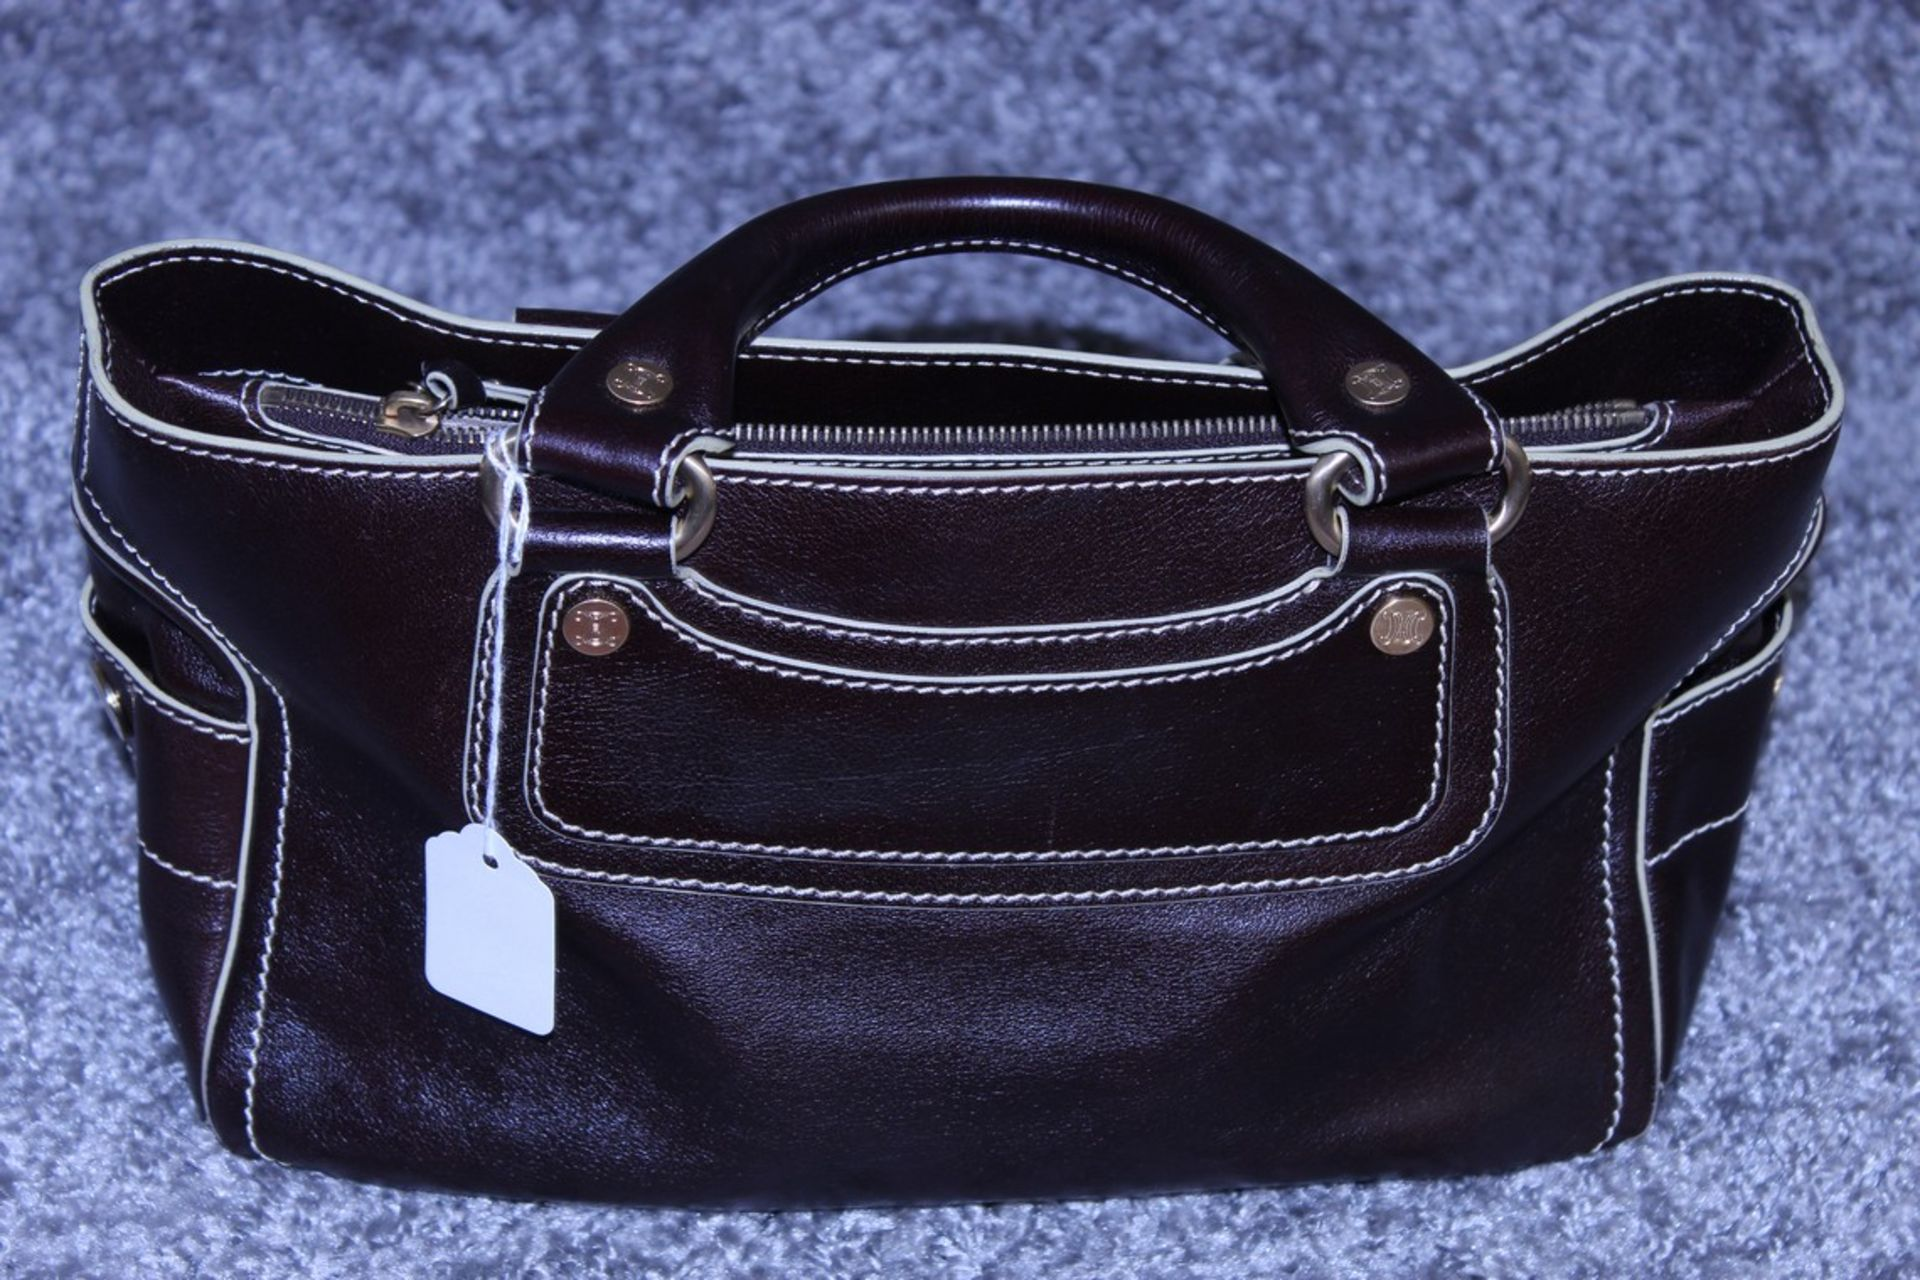 RRP £1,000 Celine Boogie Handbag, Brown Calf Small Grained Leather, Leather Handles, 22X30X13Cm ( - Image 3 of 3